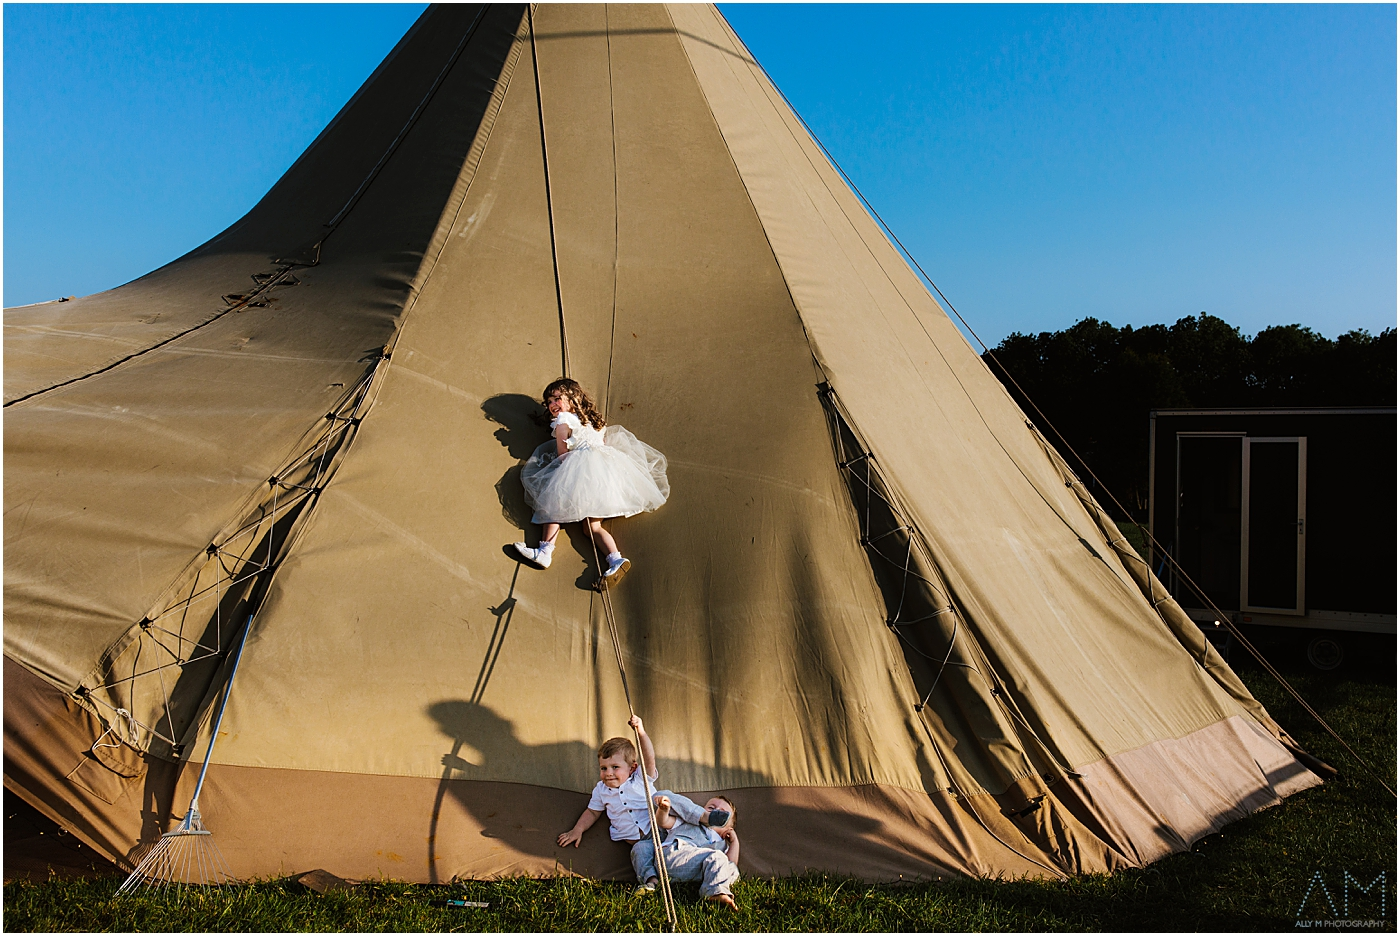 Wedding photography at New Hill Farm and Stud, Manchester